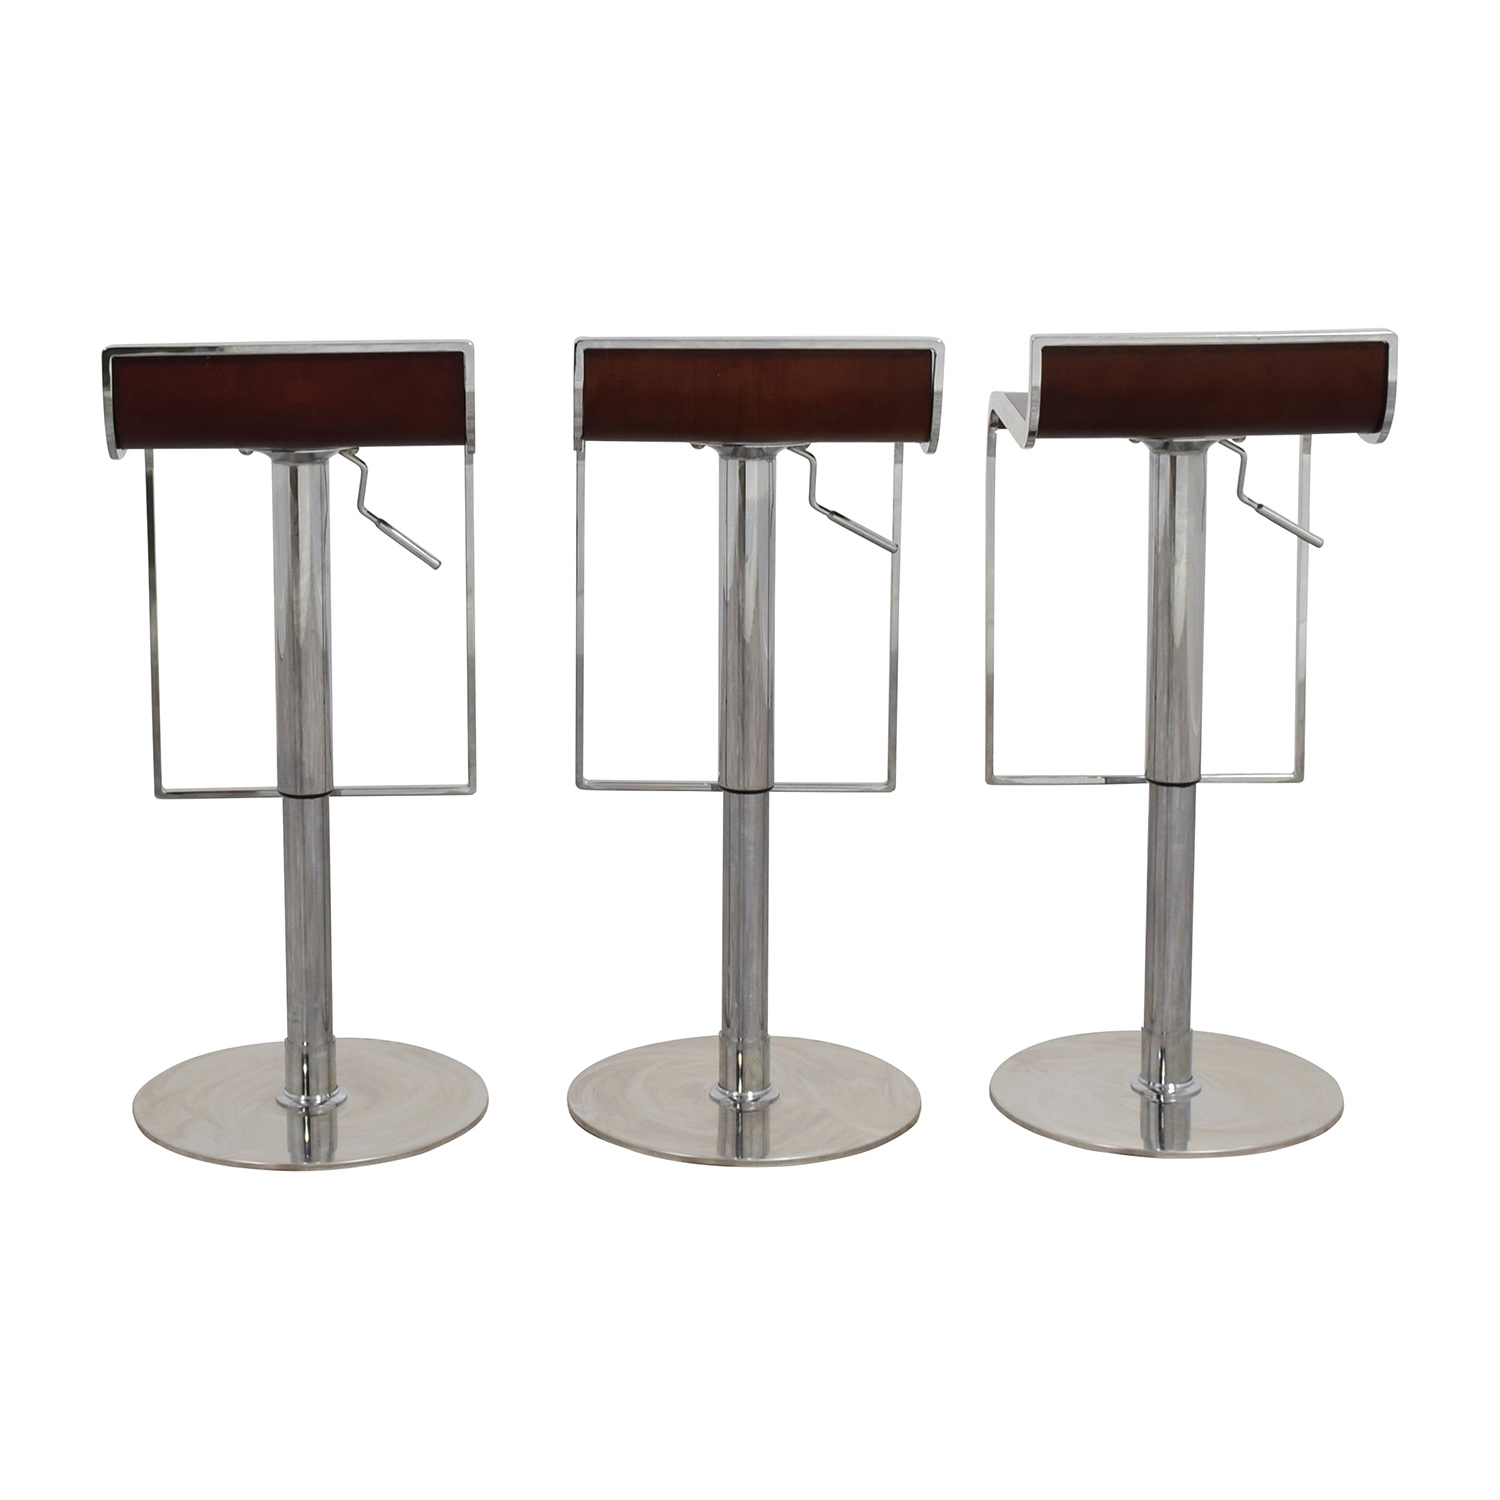 buy InMod InMod Forest Brown Adjustable Bar Counter Stool online